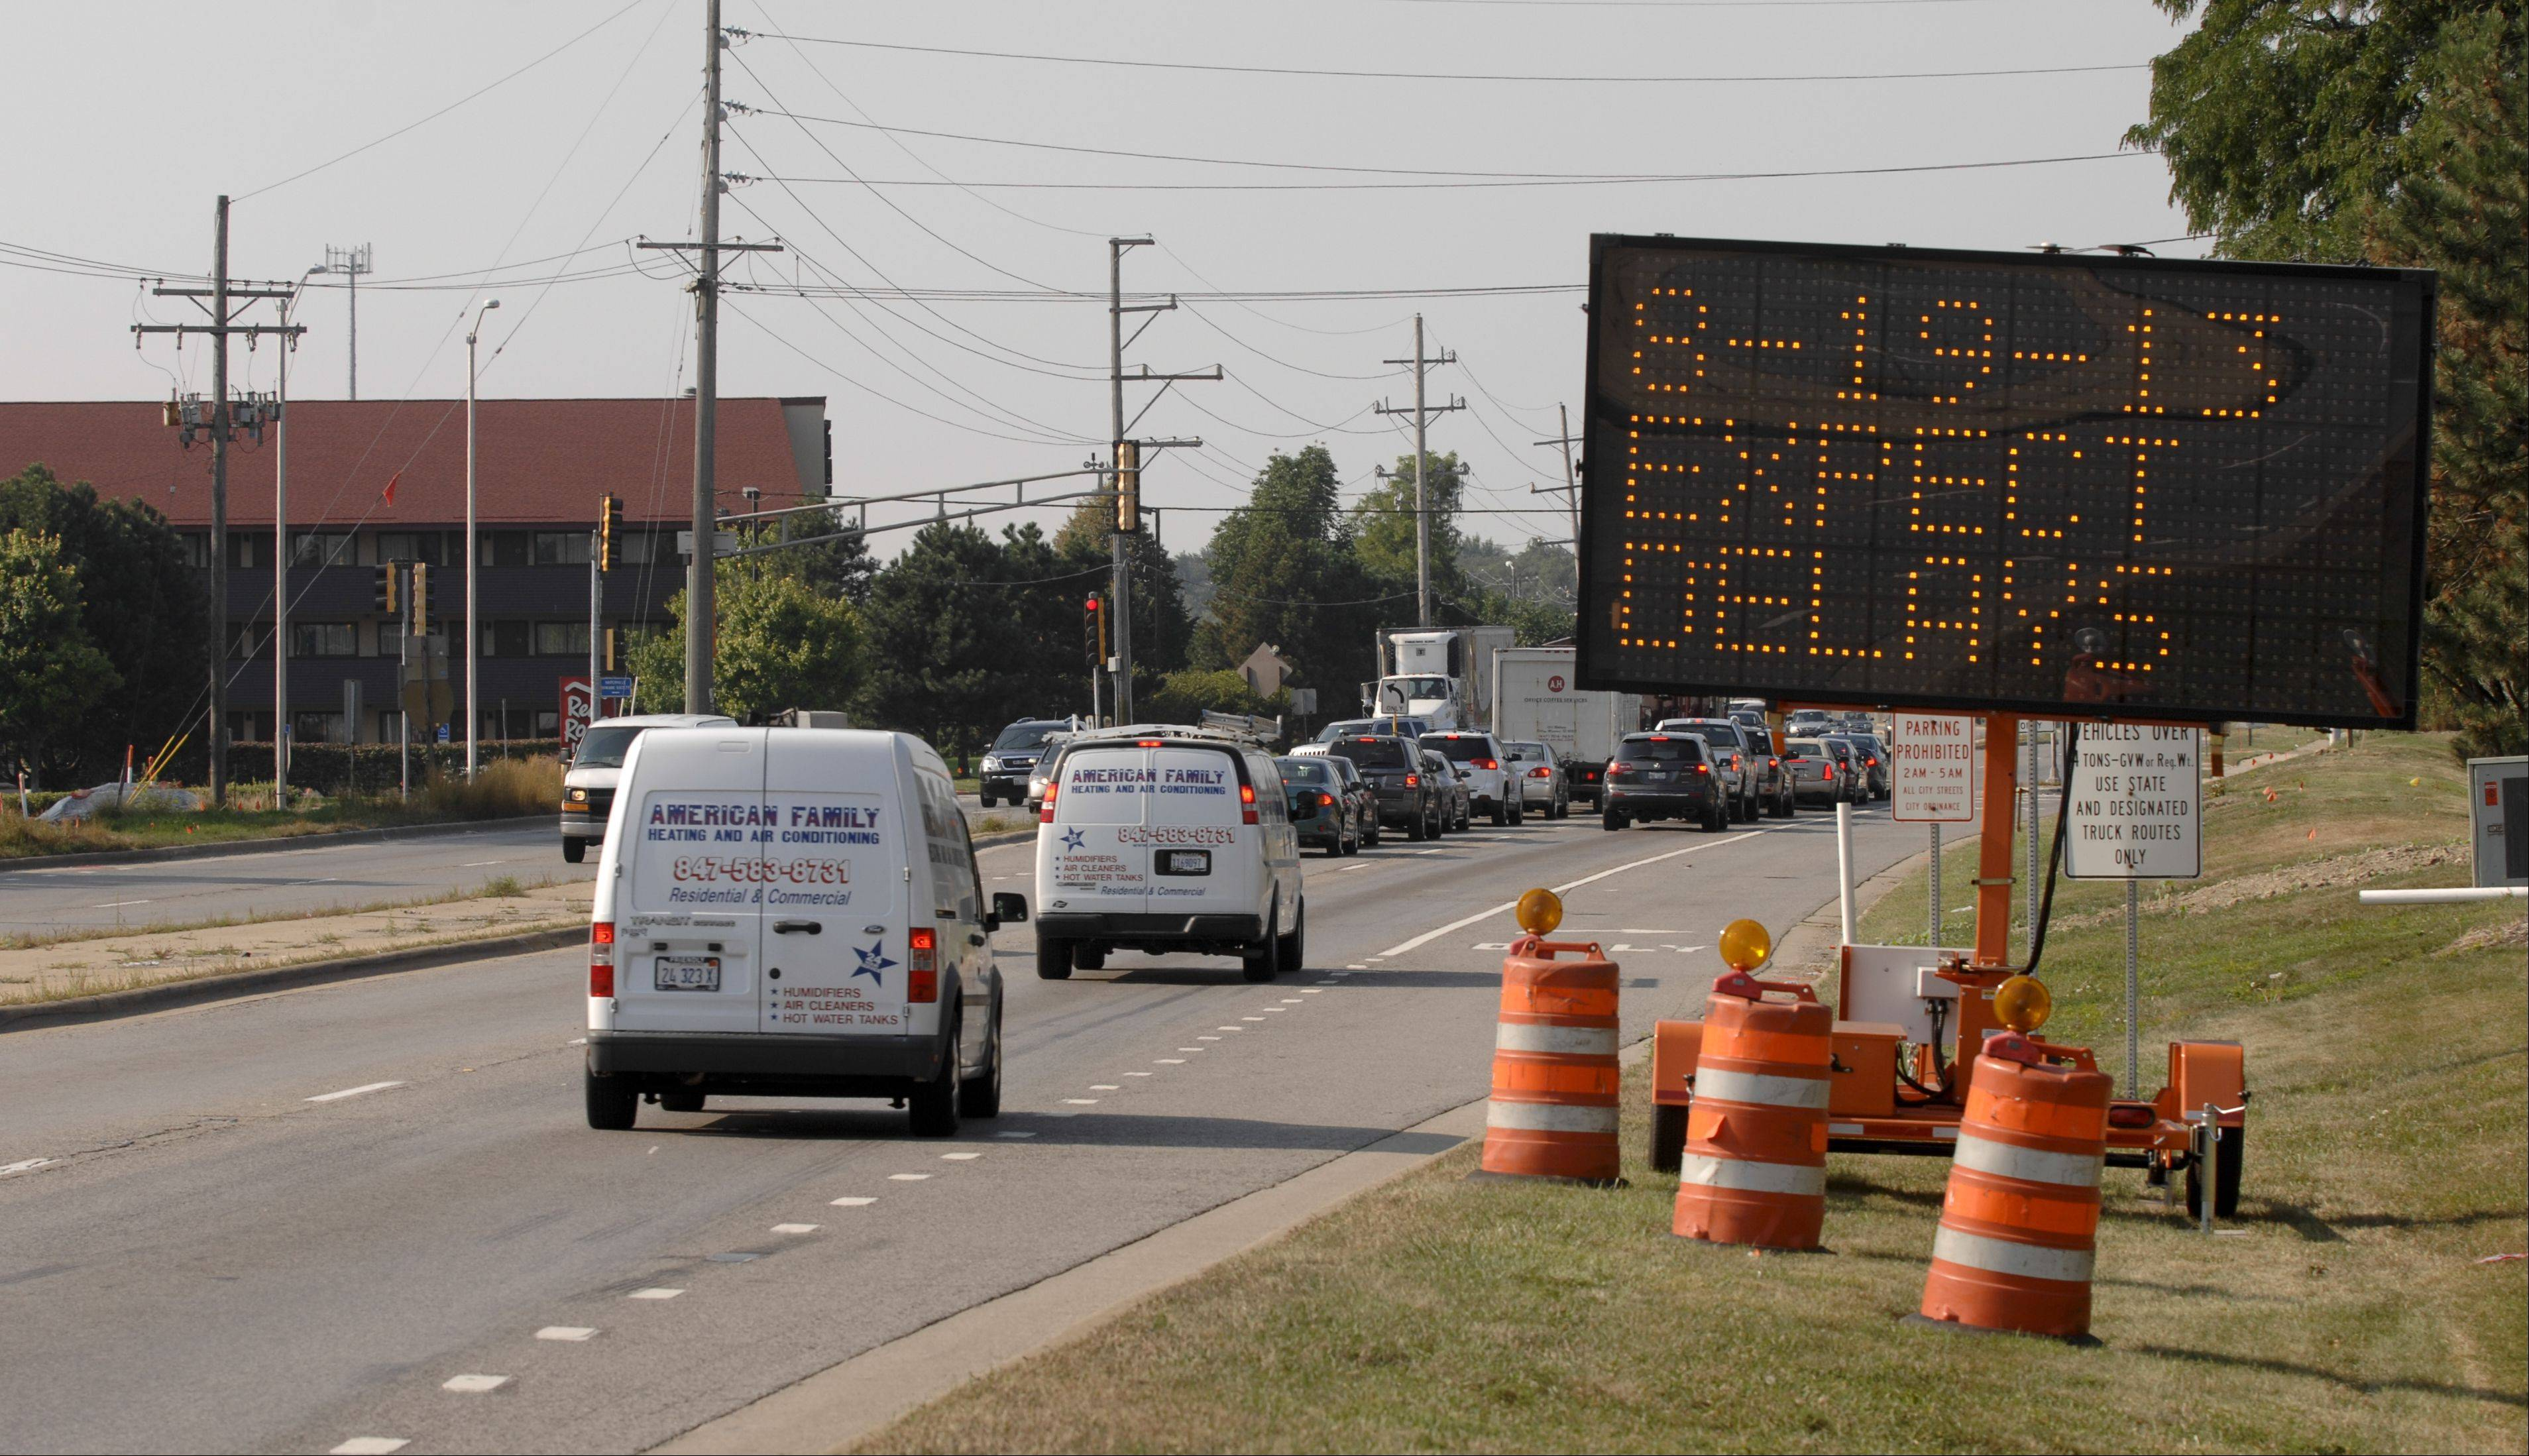 A sign warns drivers about construction that started Monday along Route 59 from Ferry Road south to Aurora Avenue/New York Street in Naperville. Crews first will be relocating utilities and setting up barricades to prepare for the two-year widening proj